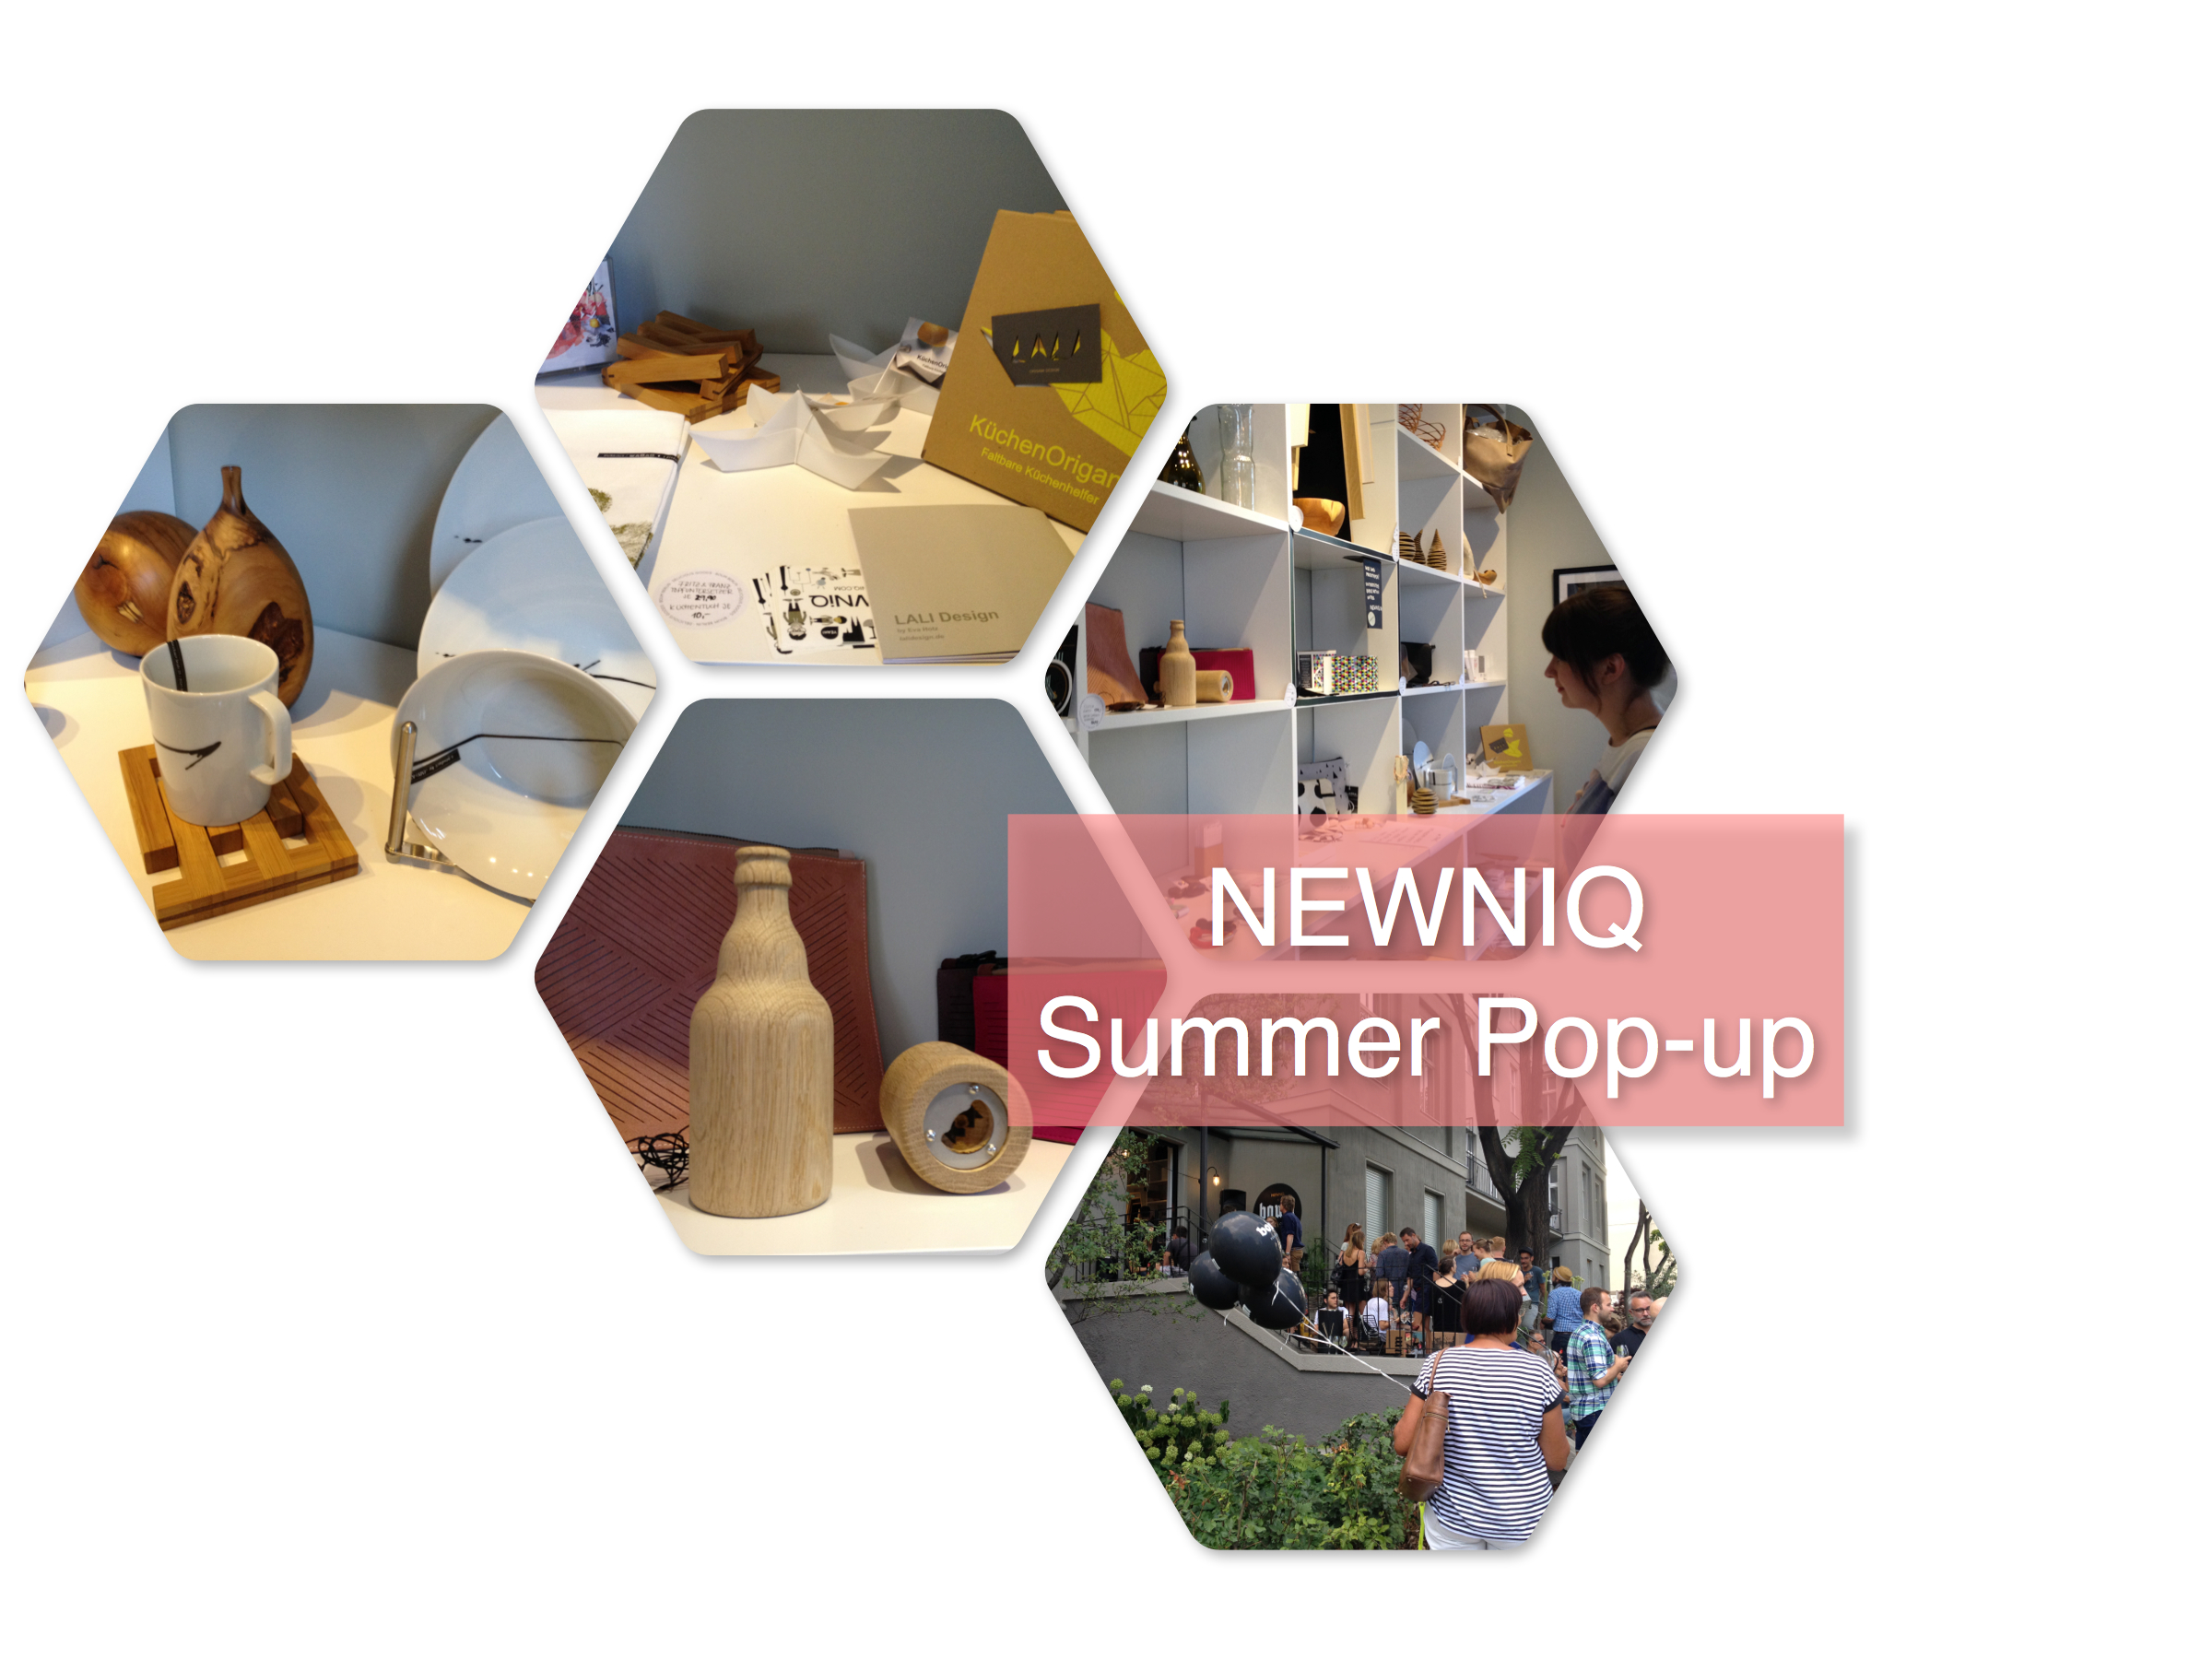 Newniq Summer Pop-up